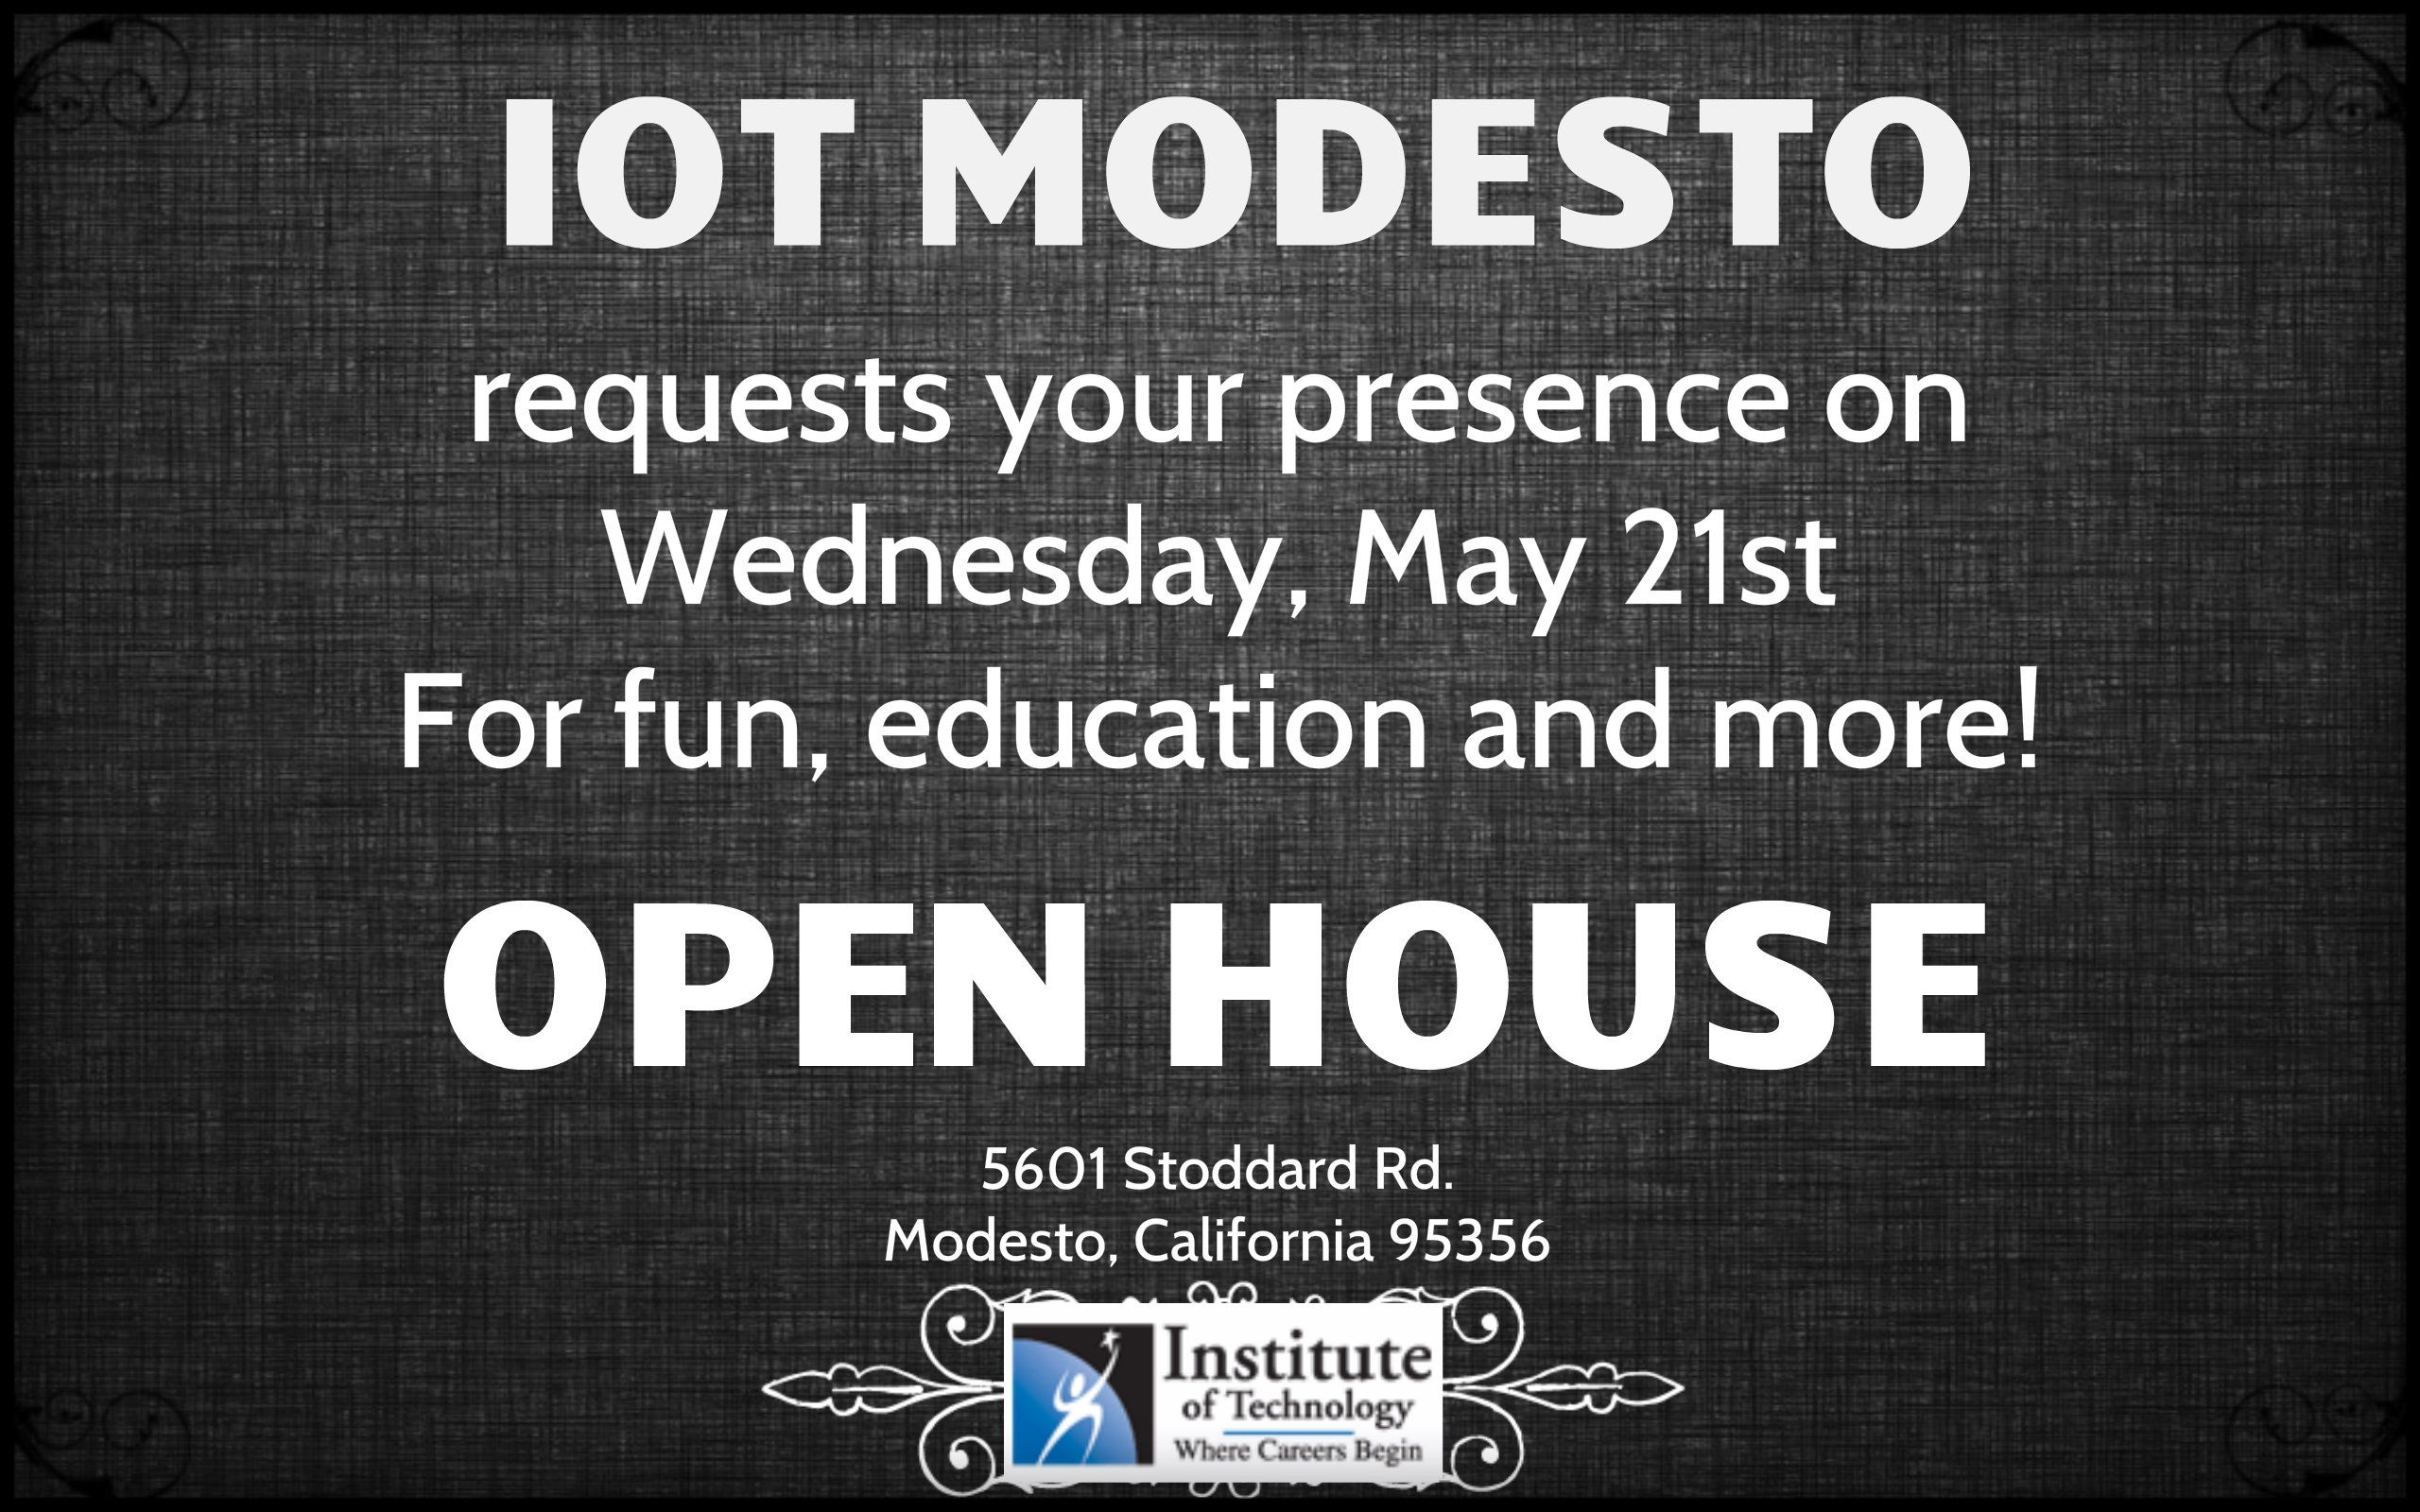 IOT Modesto's open house! Technology careers